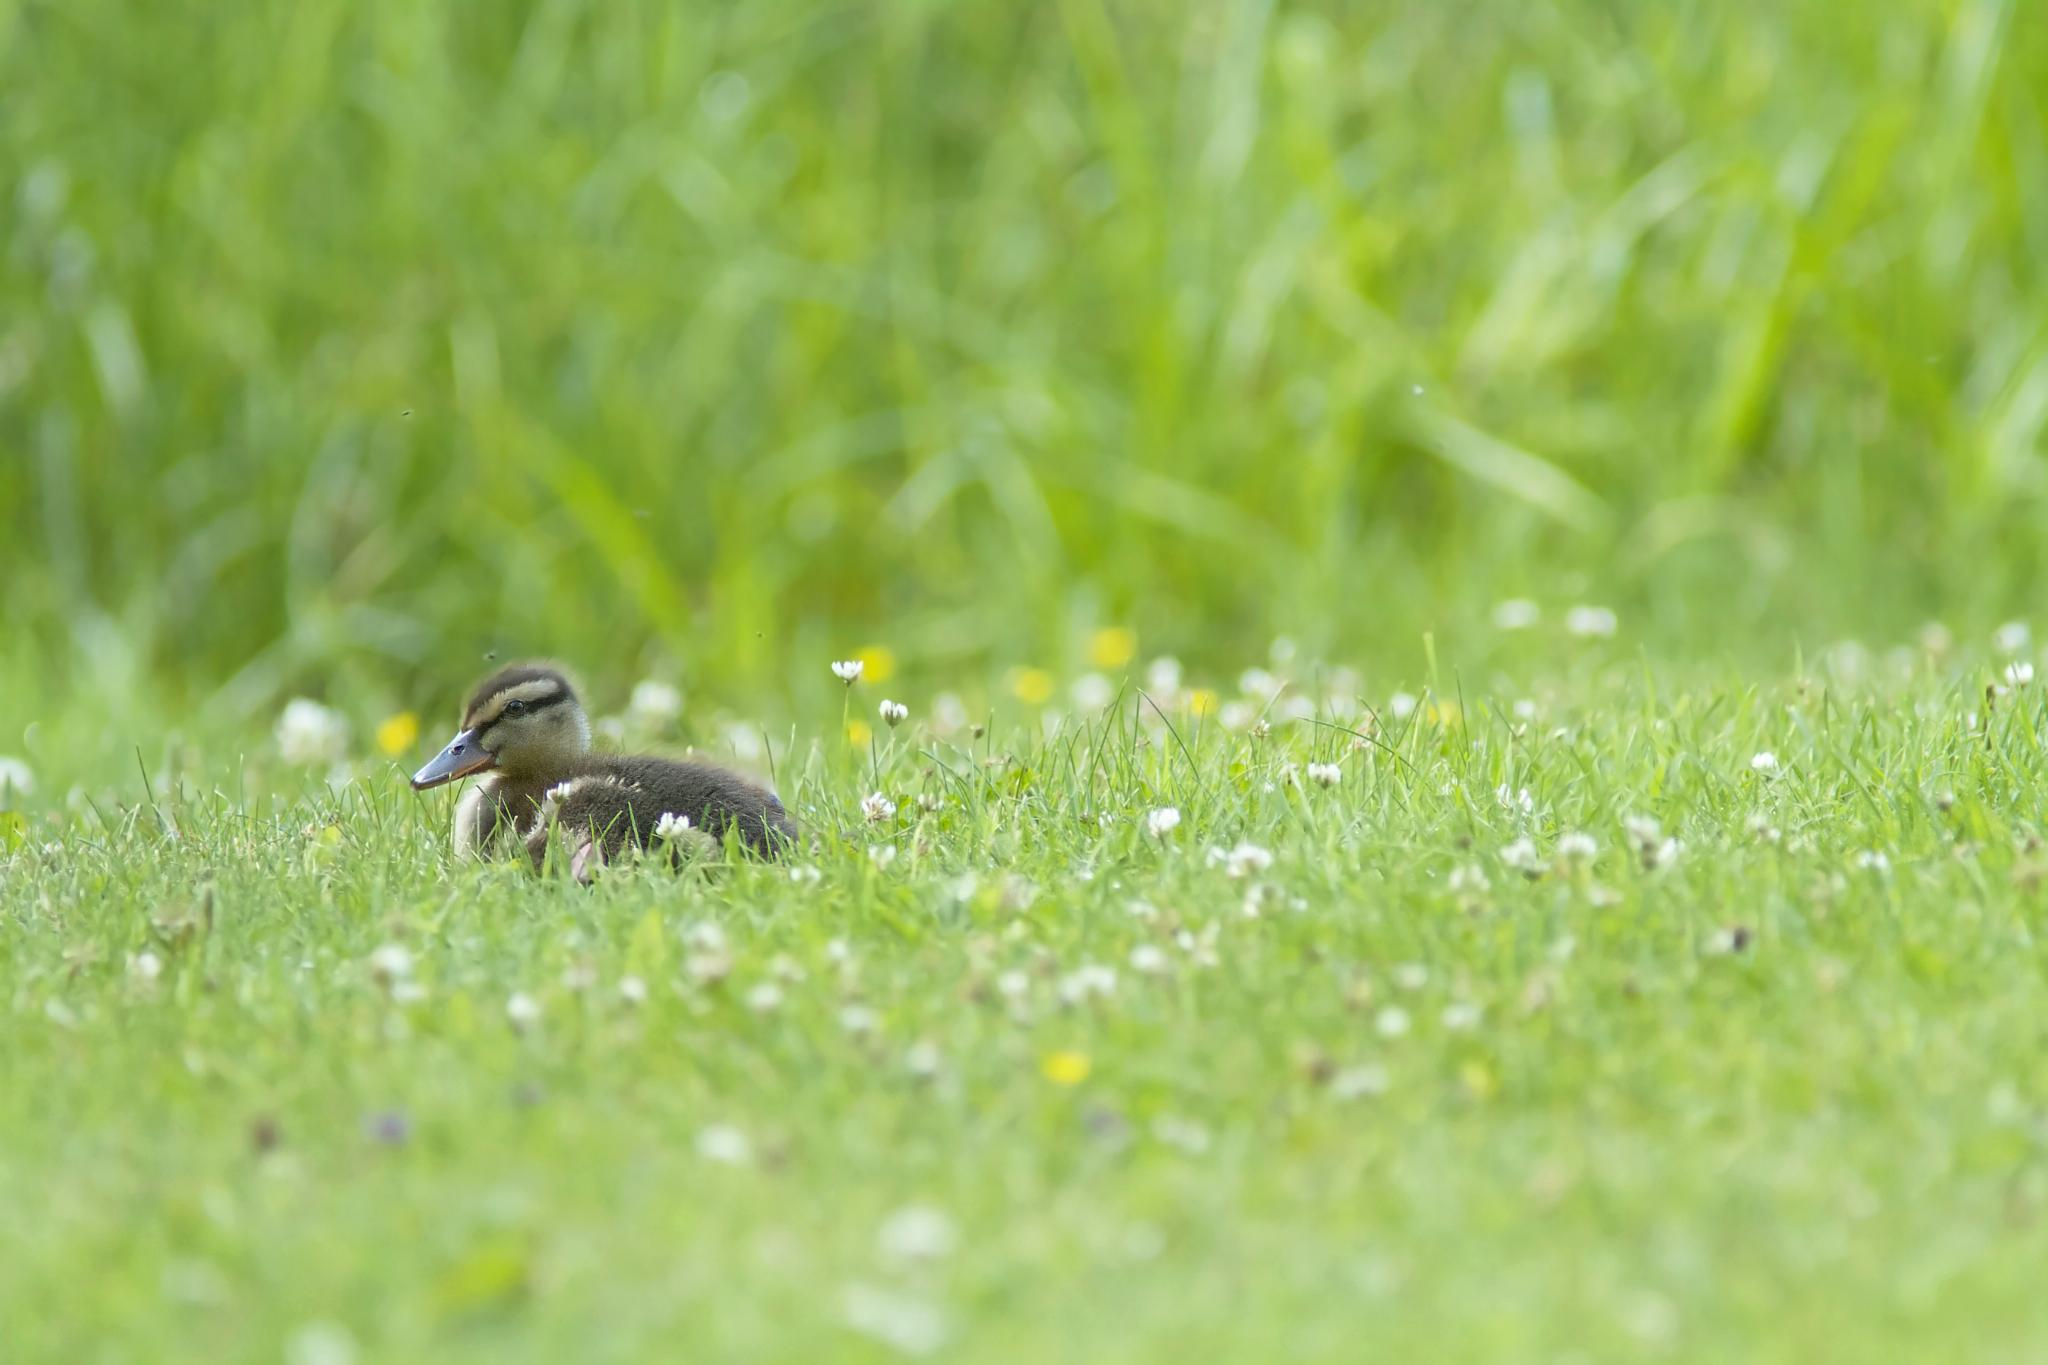 A duckling resting on the grass by SRFOTO